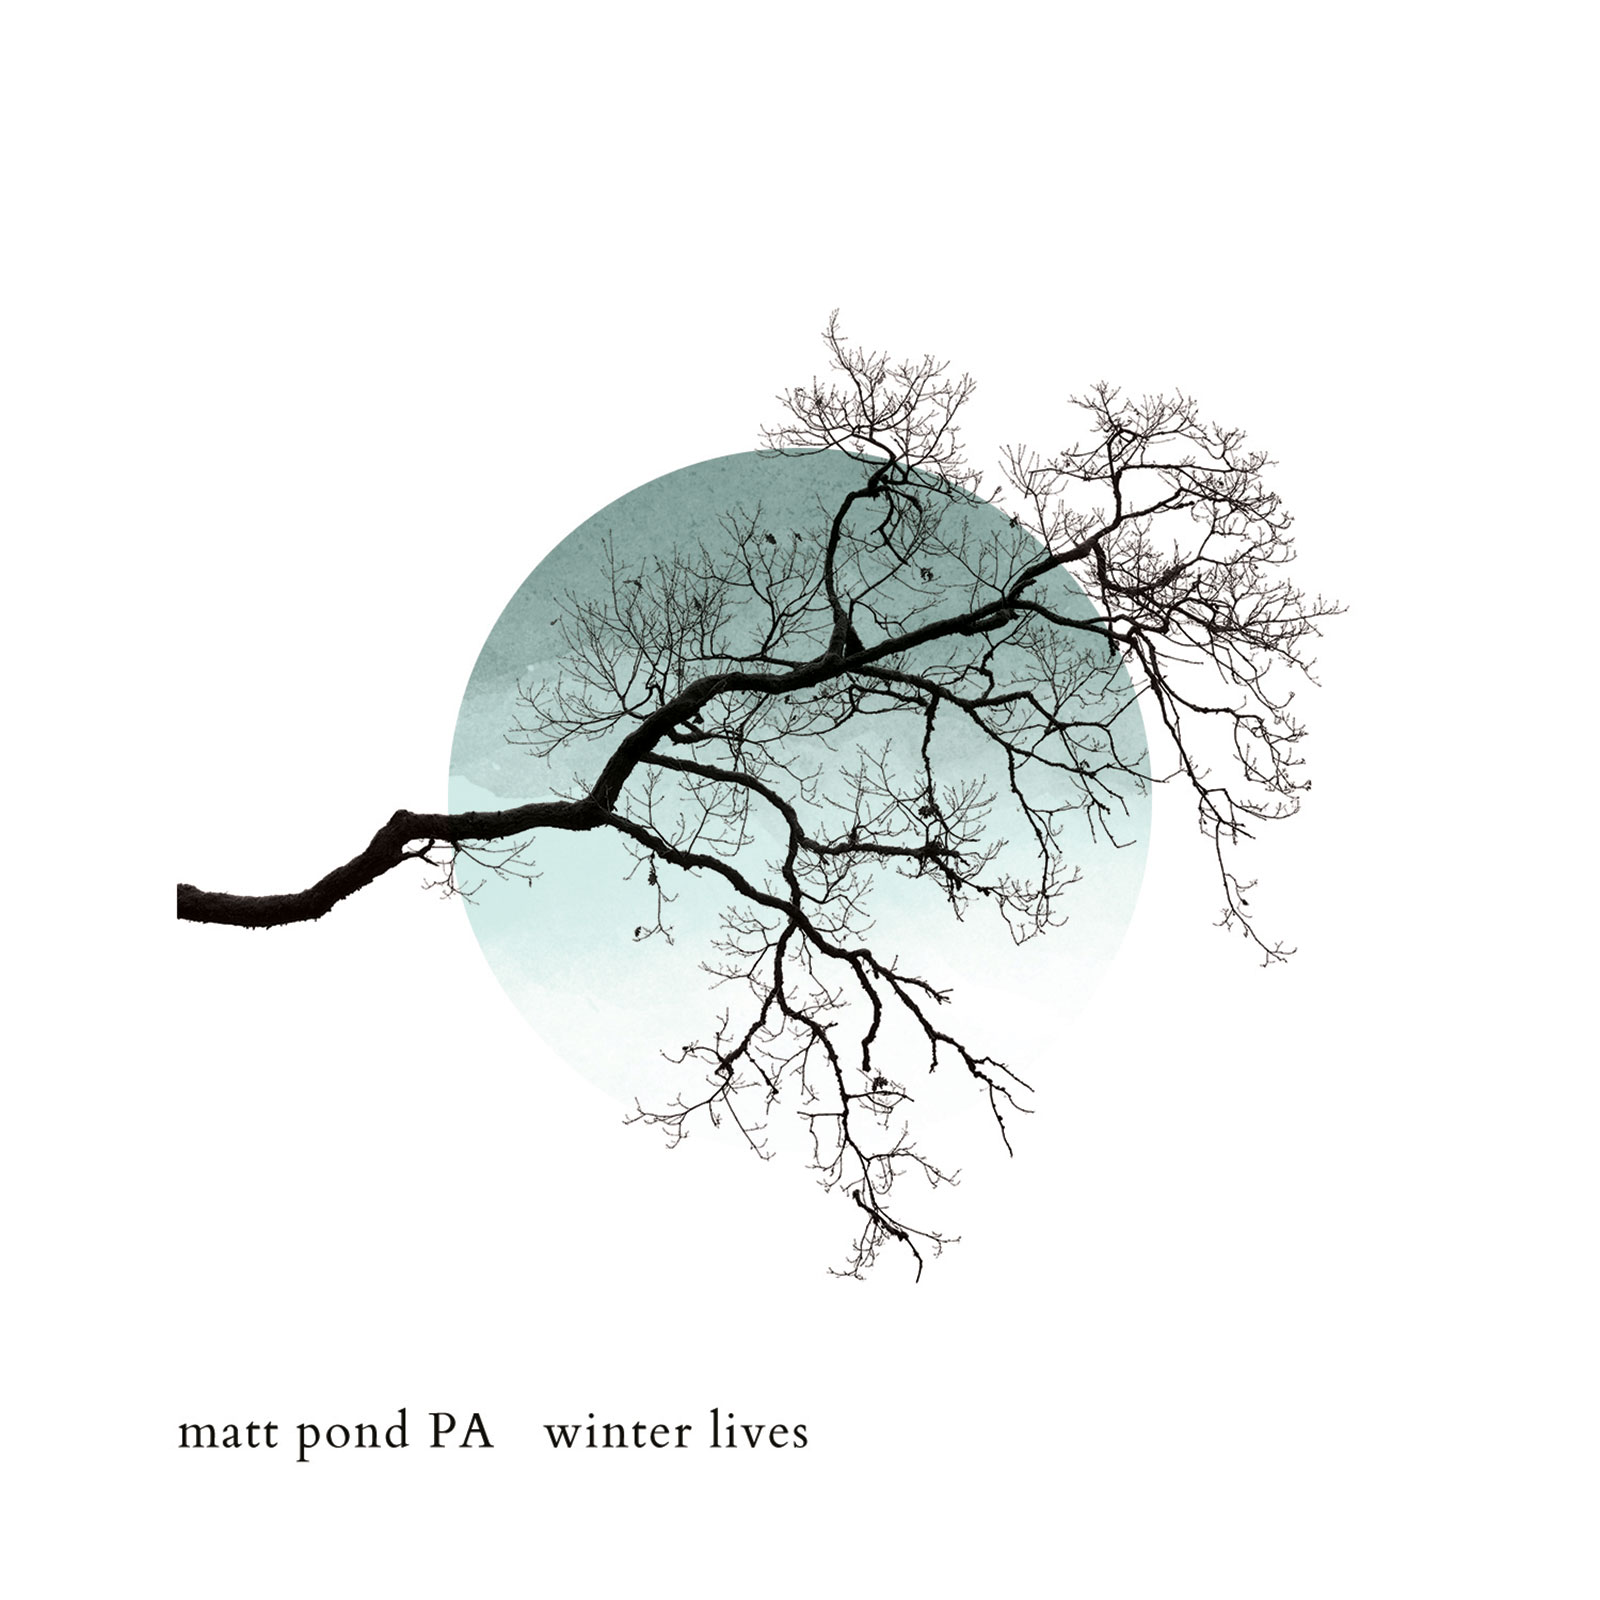 winter lives - matt pond pa